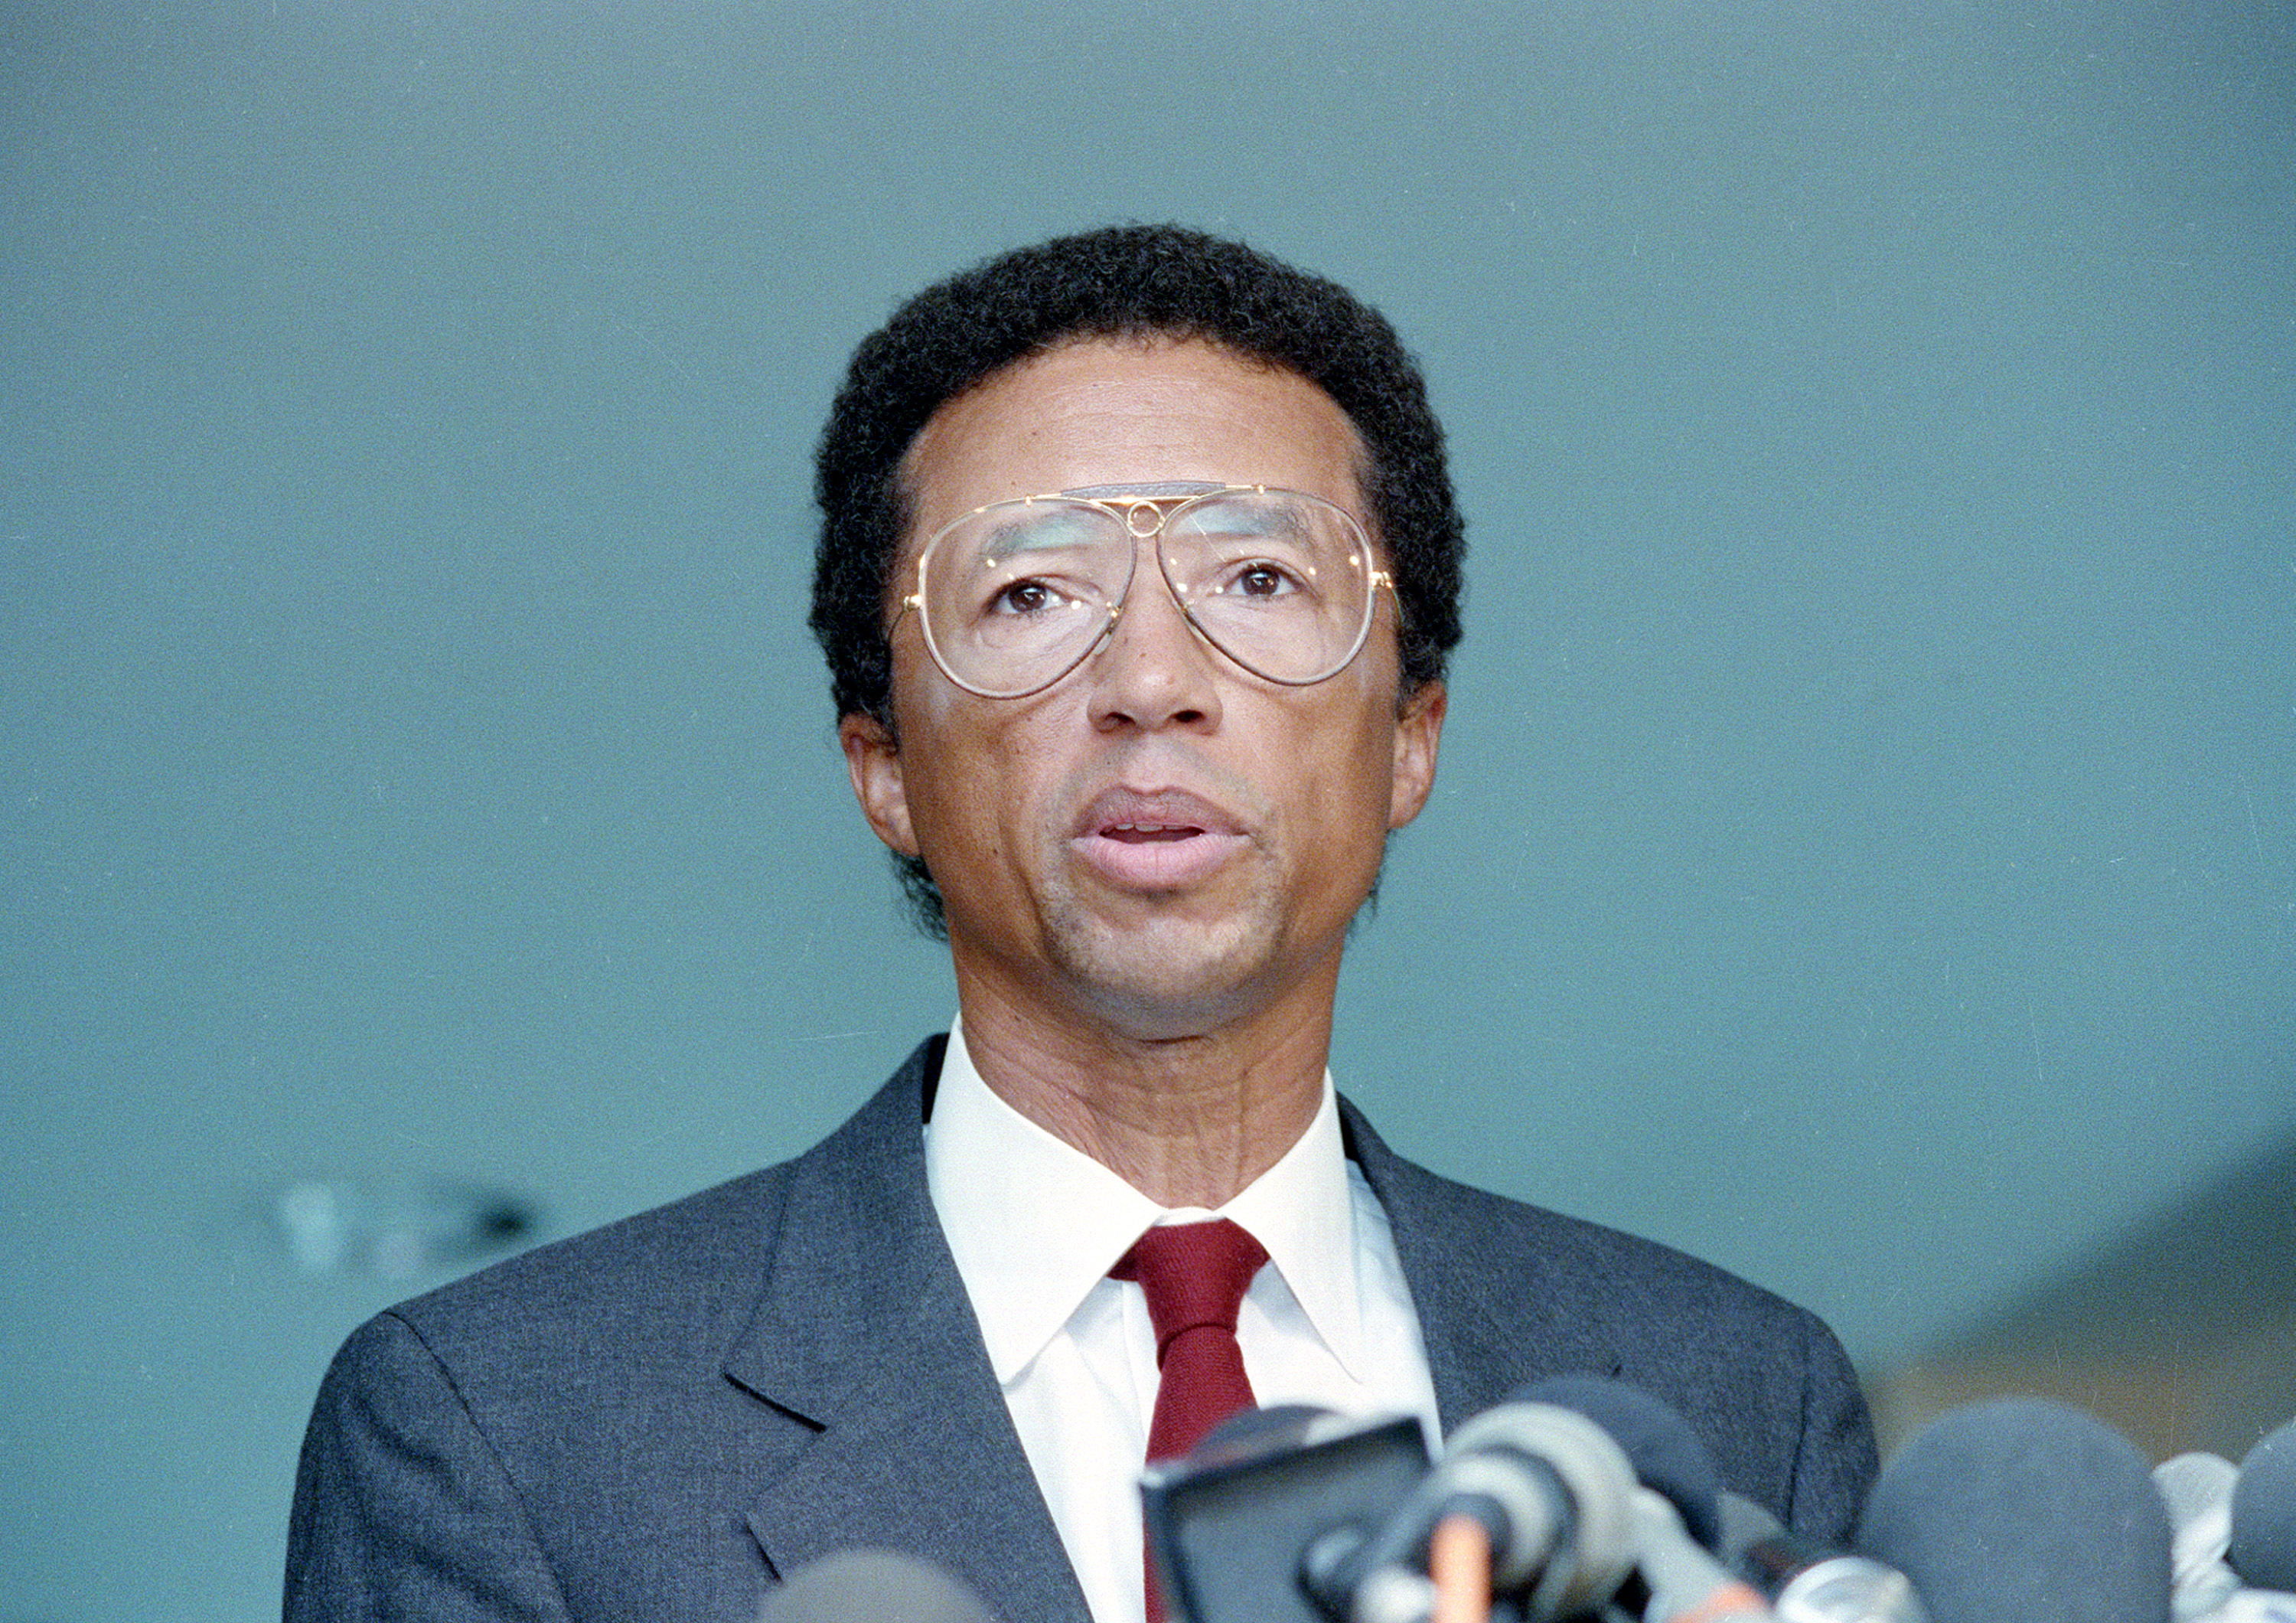 Flashback Arthur Ashe discusses AIDS diagnosis NBC News